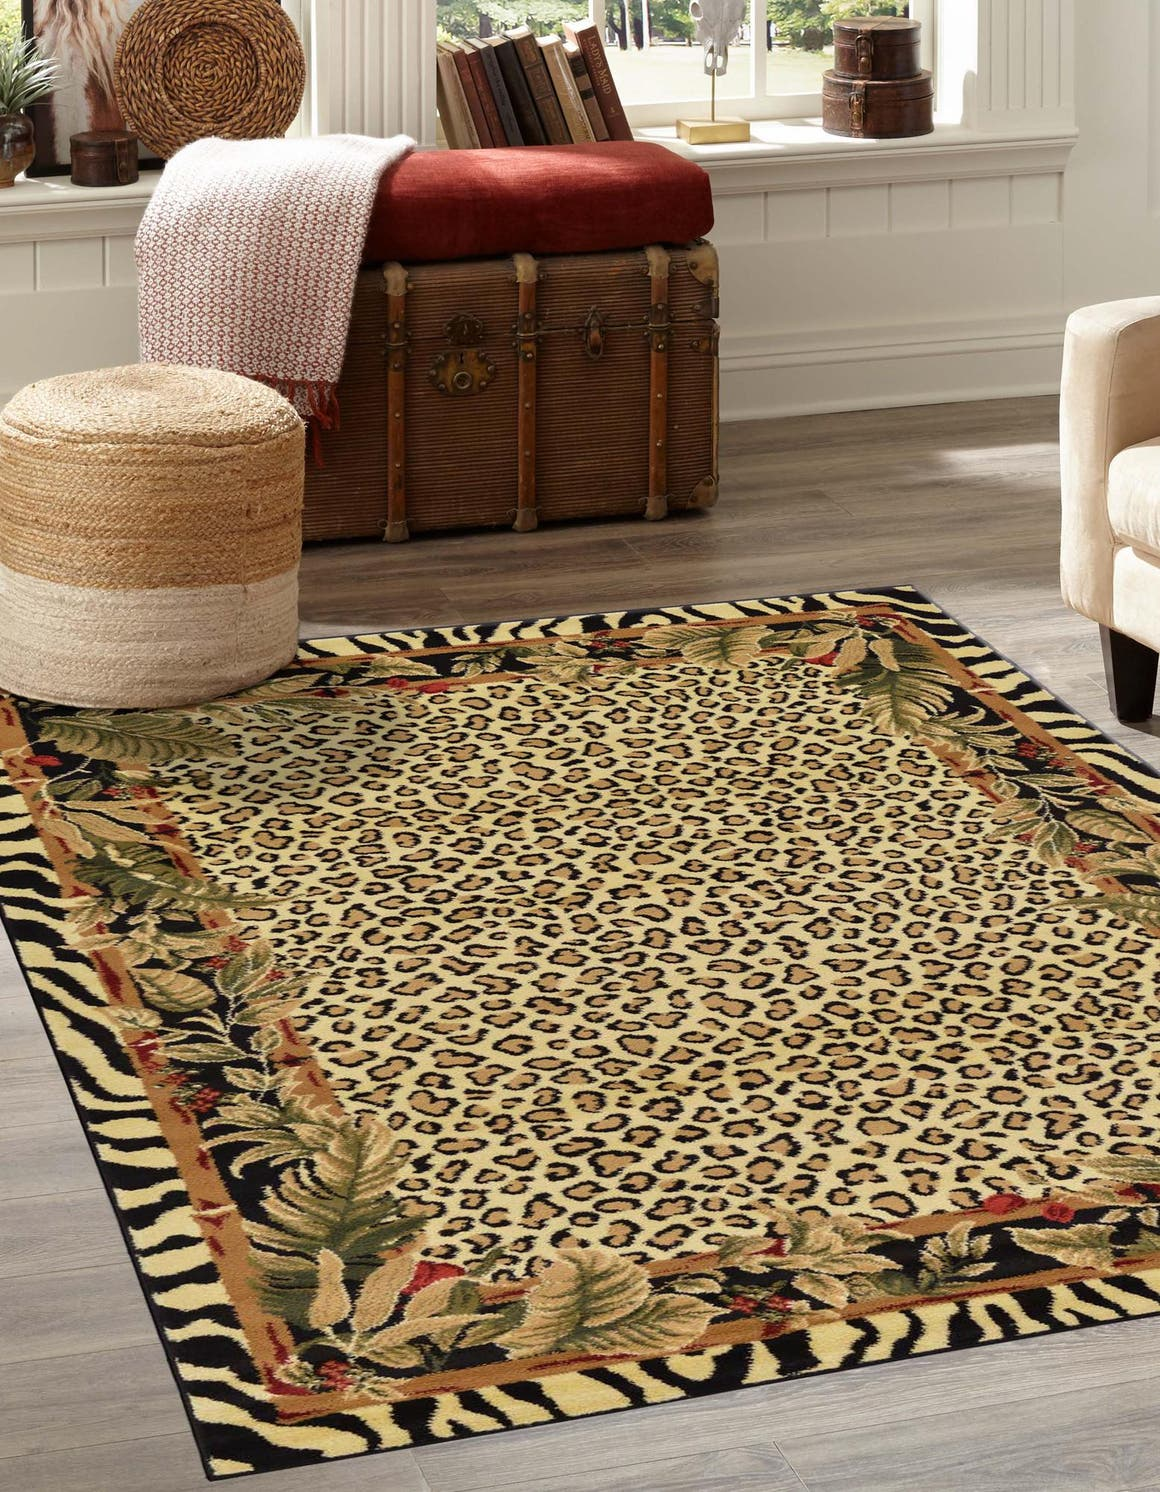 6' x 9' Safari Rug main image